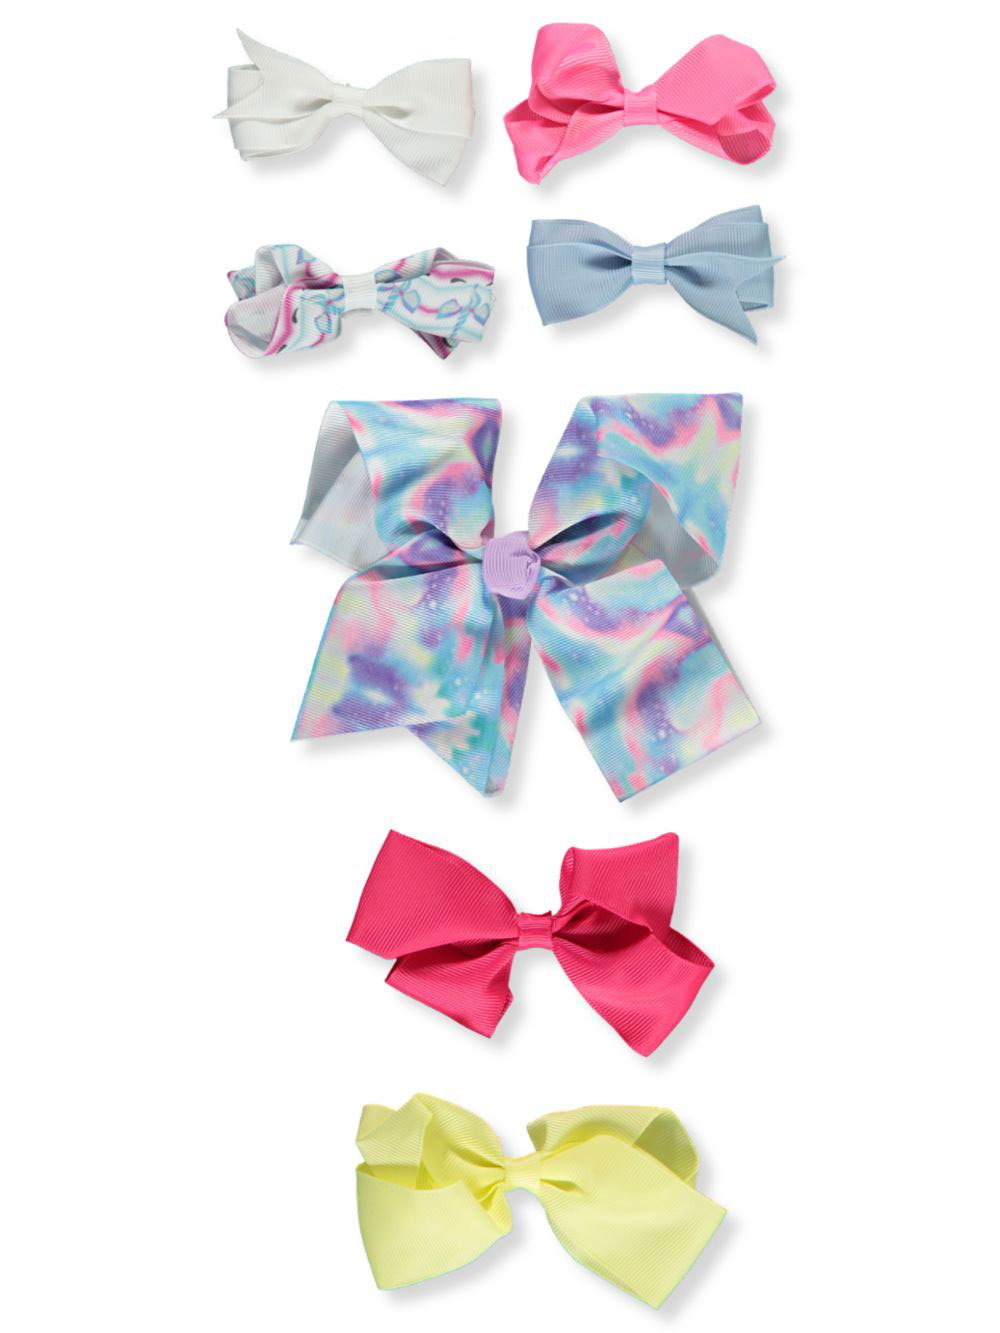 Buttons and Bows Hair Accessories